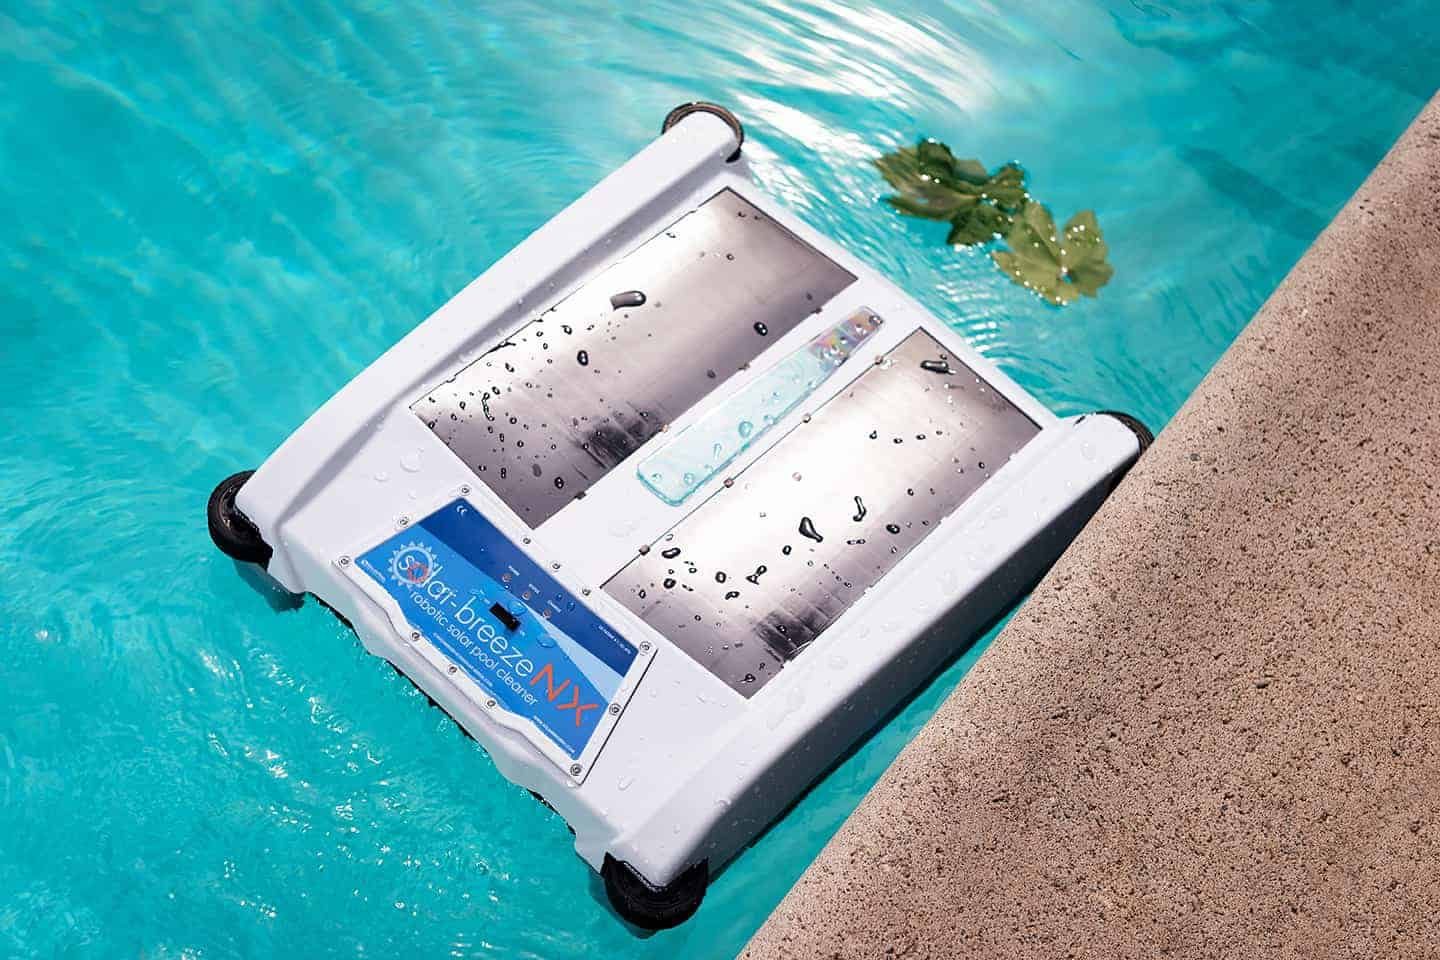 Top 10 Best Robotic Pool Cleaner 2021 Reviews & Buying Guide